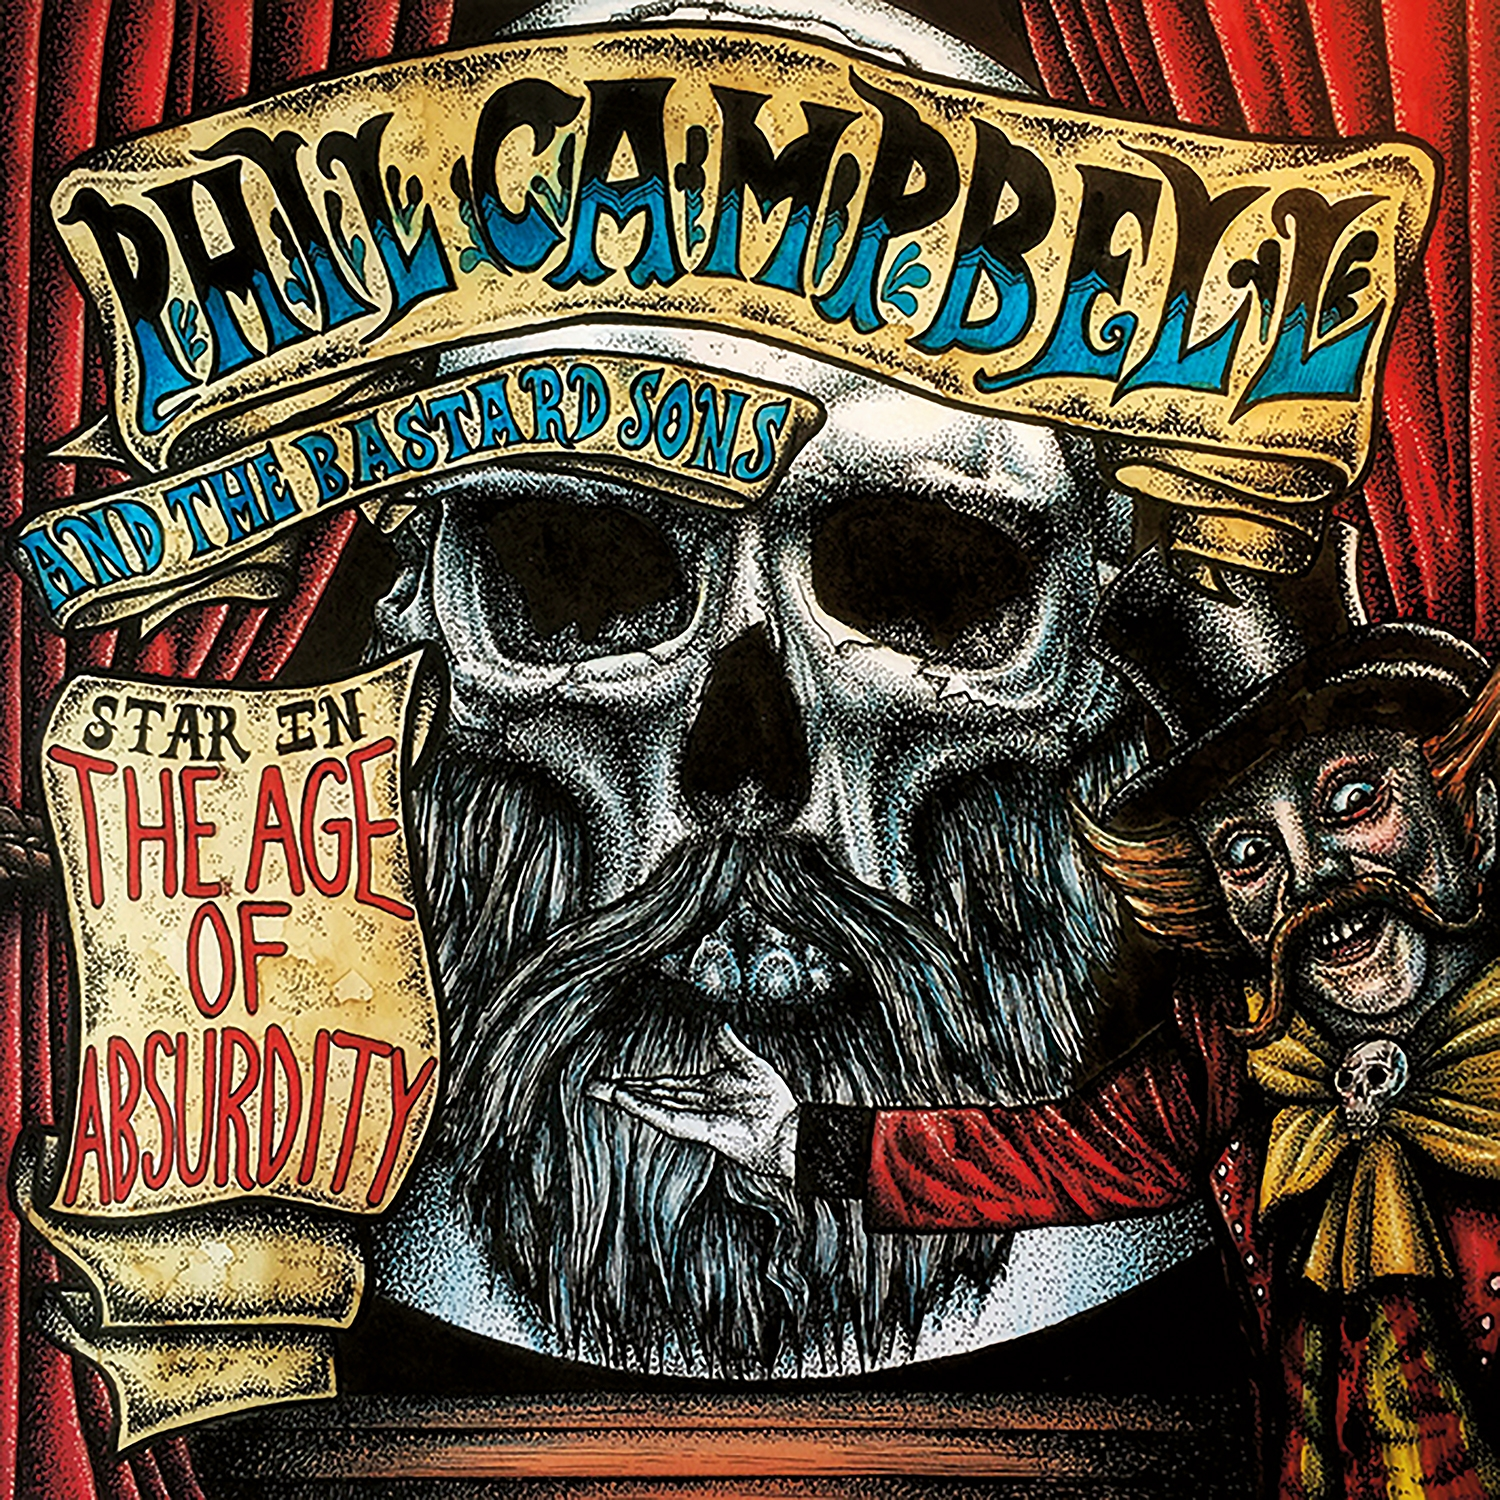 Phil Campbell And The Bastard Sons – The Age Of Absurdity (Album Review)